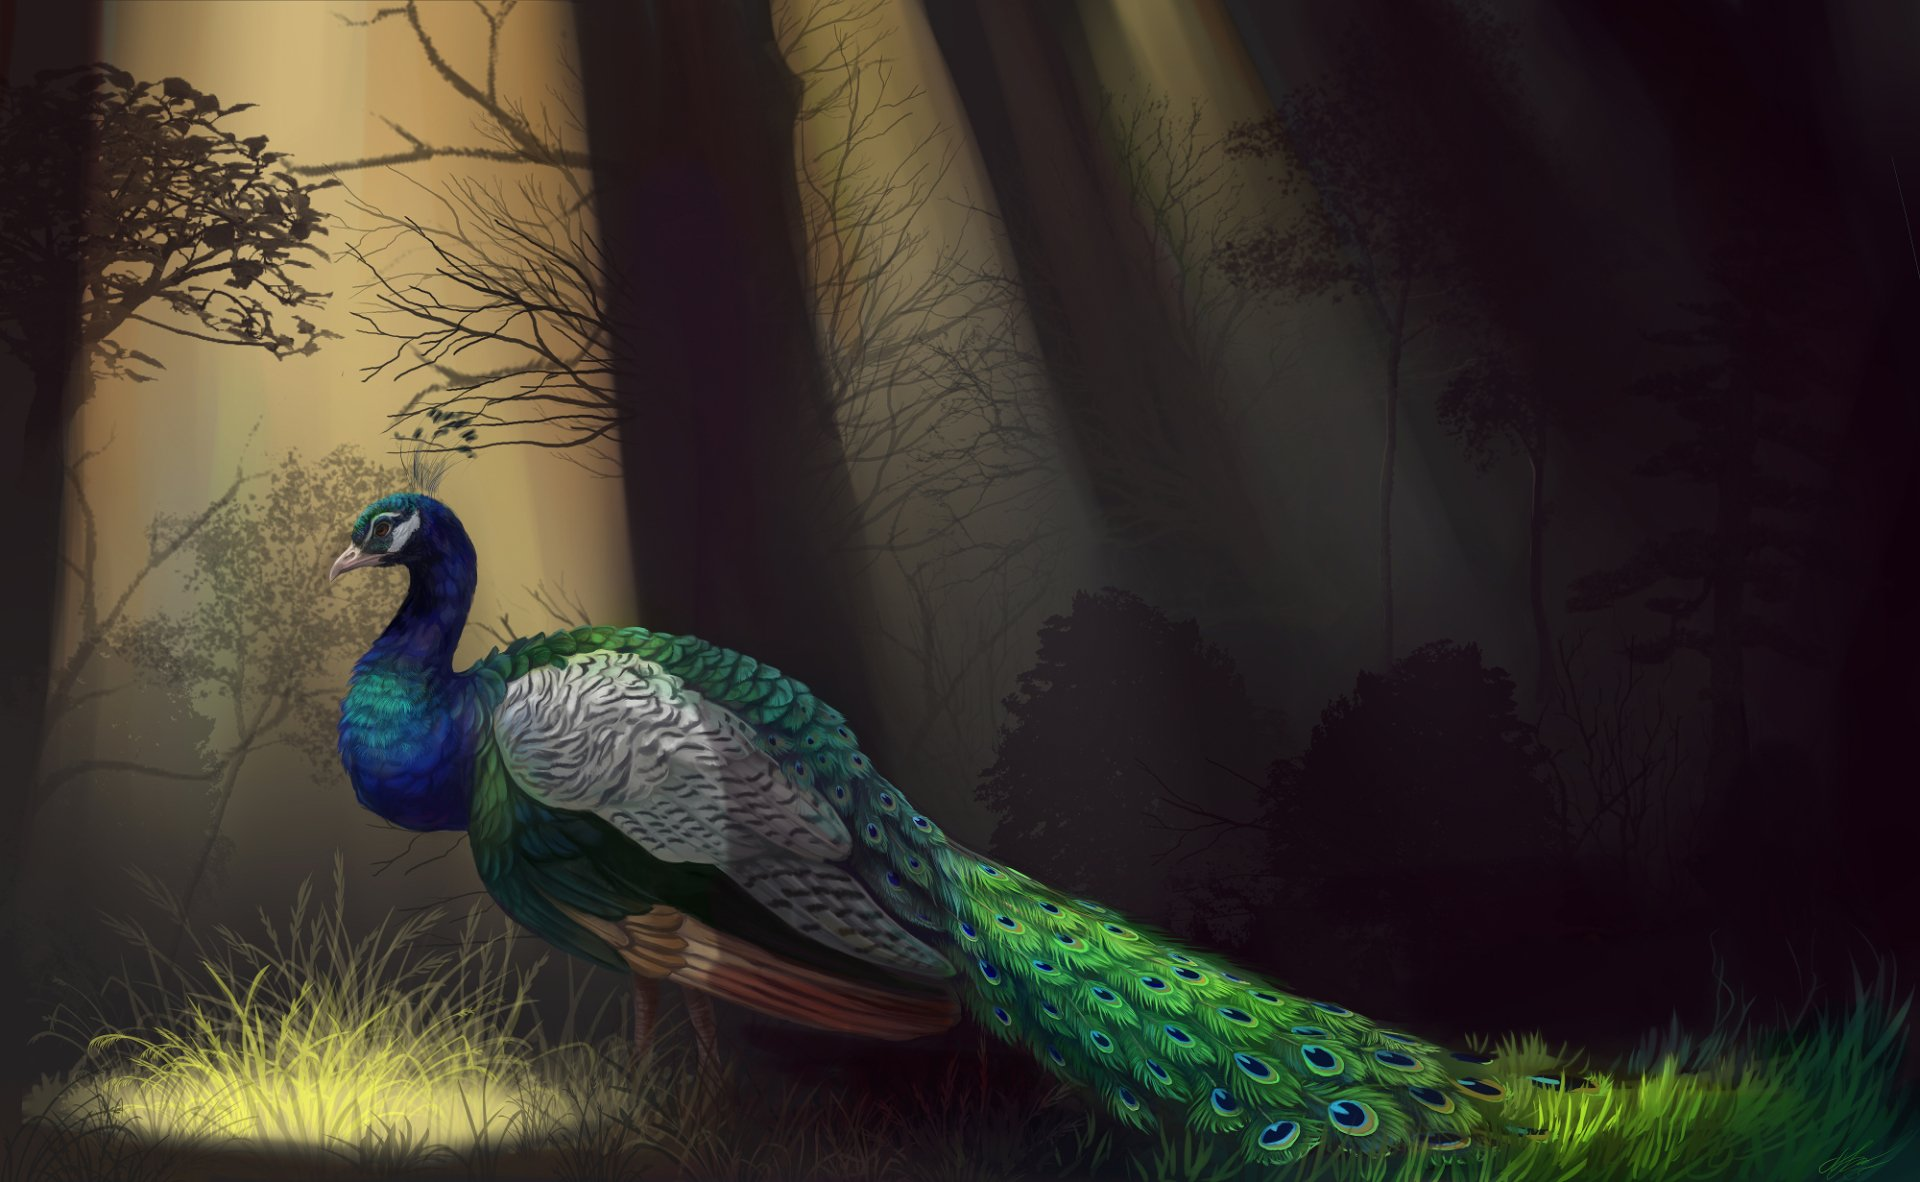 Animal - Peacock  Artistic Painting Bird Colorful Forest Wallpaper